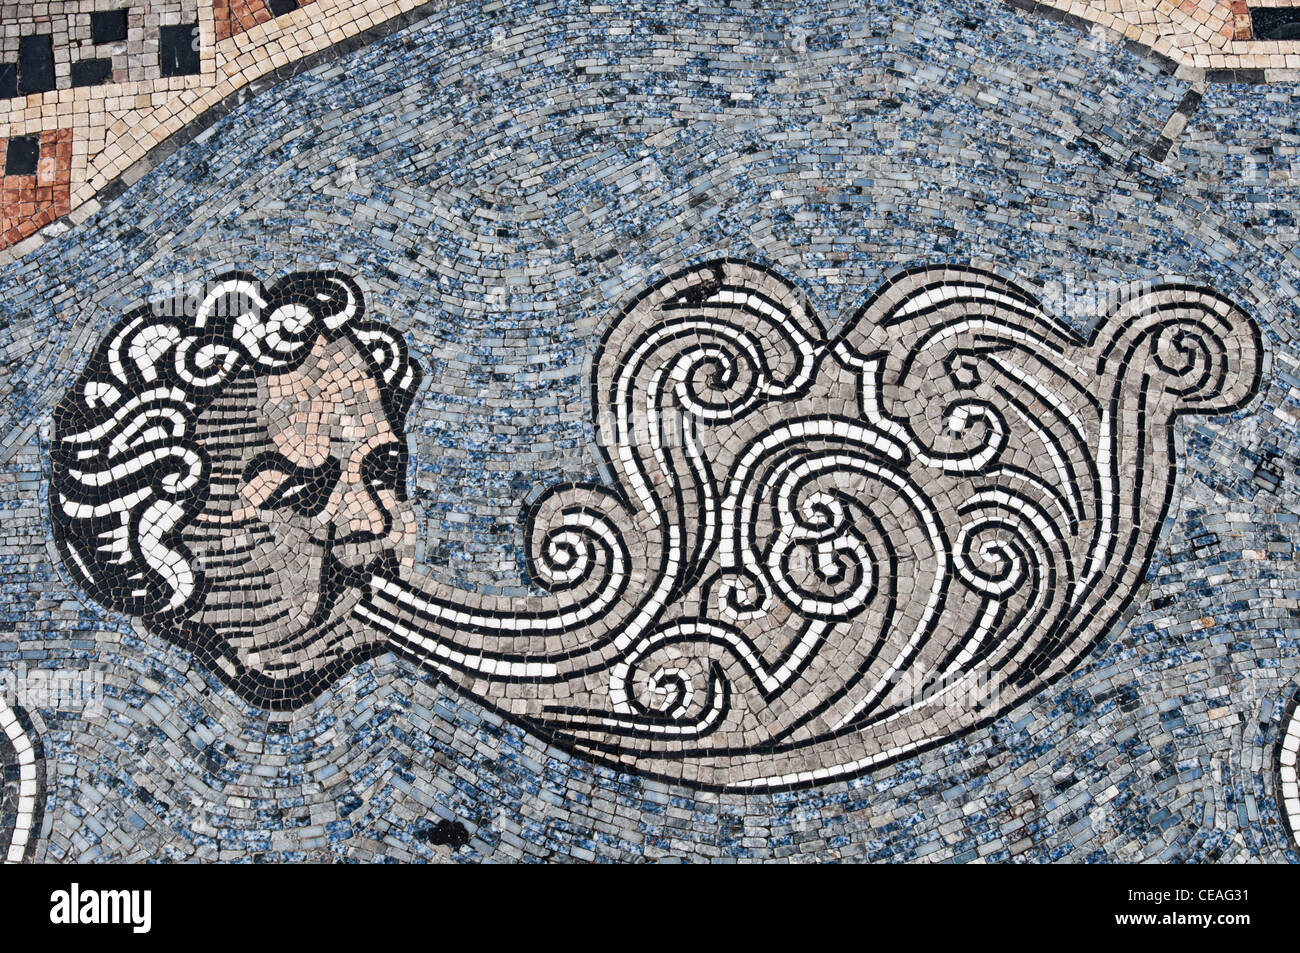 stone-mosaic-of-zephyr-or-zephyrus-god-of-western-wind-st-augustine-CEAG31.jpg